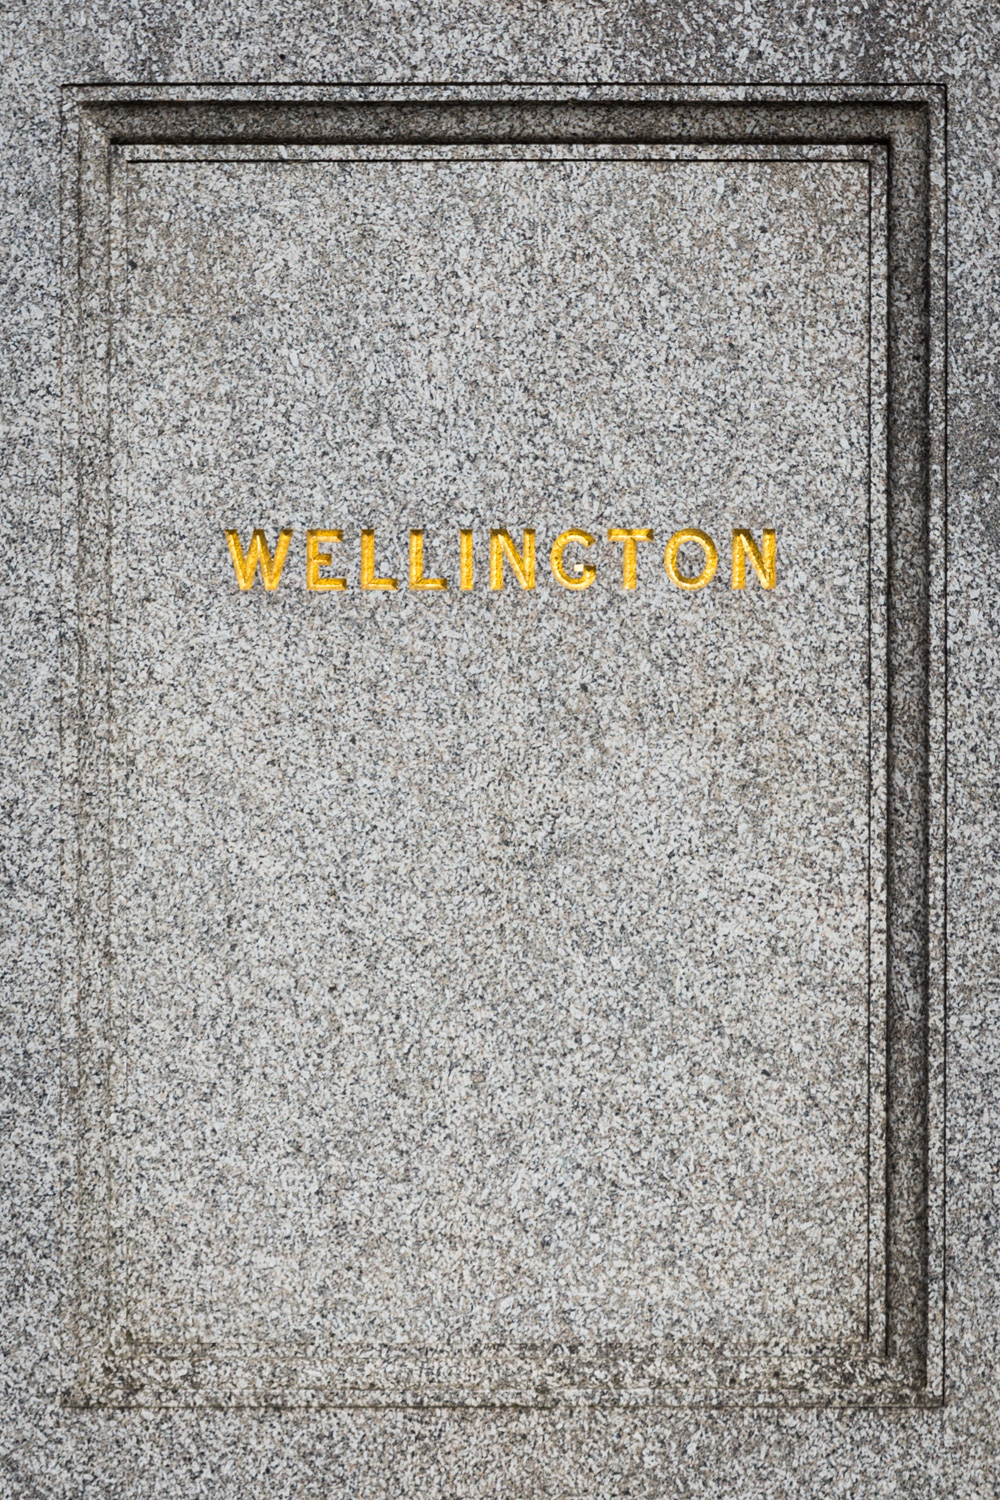 Wellington Memorial Image 4 by Rick McEvoy Architectural Photographer